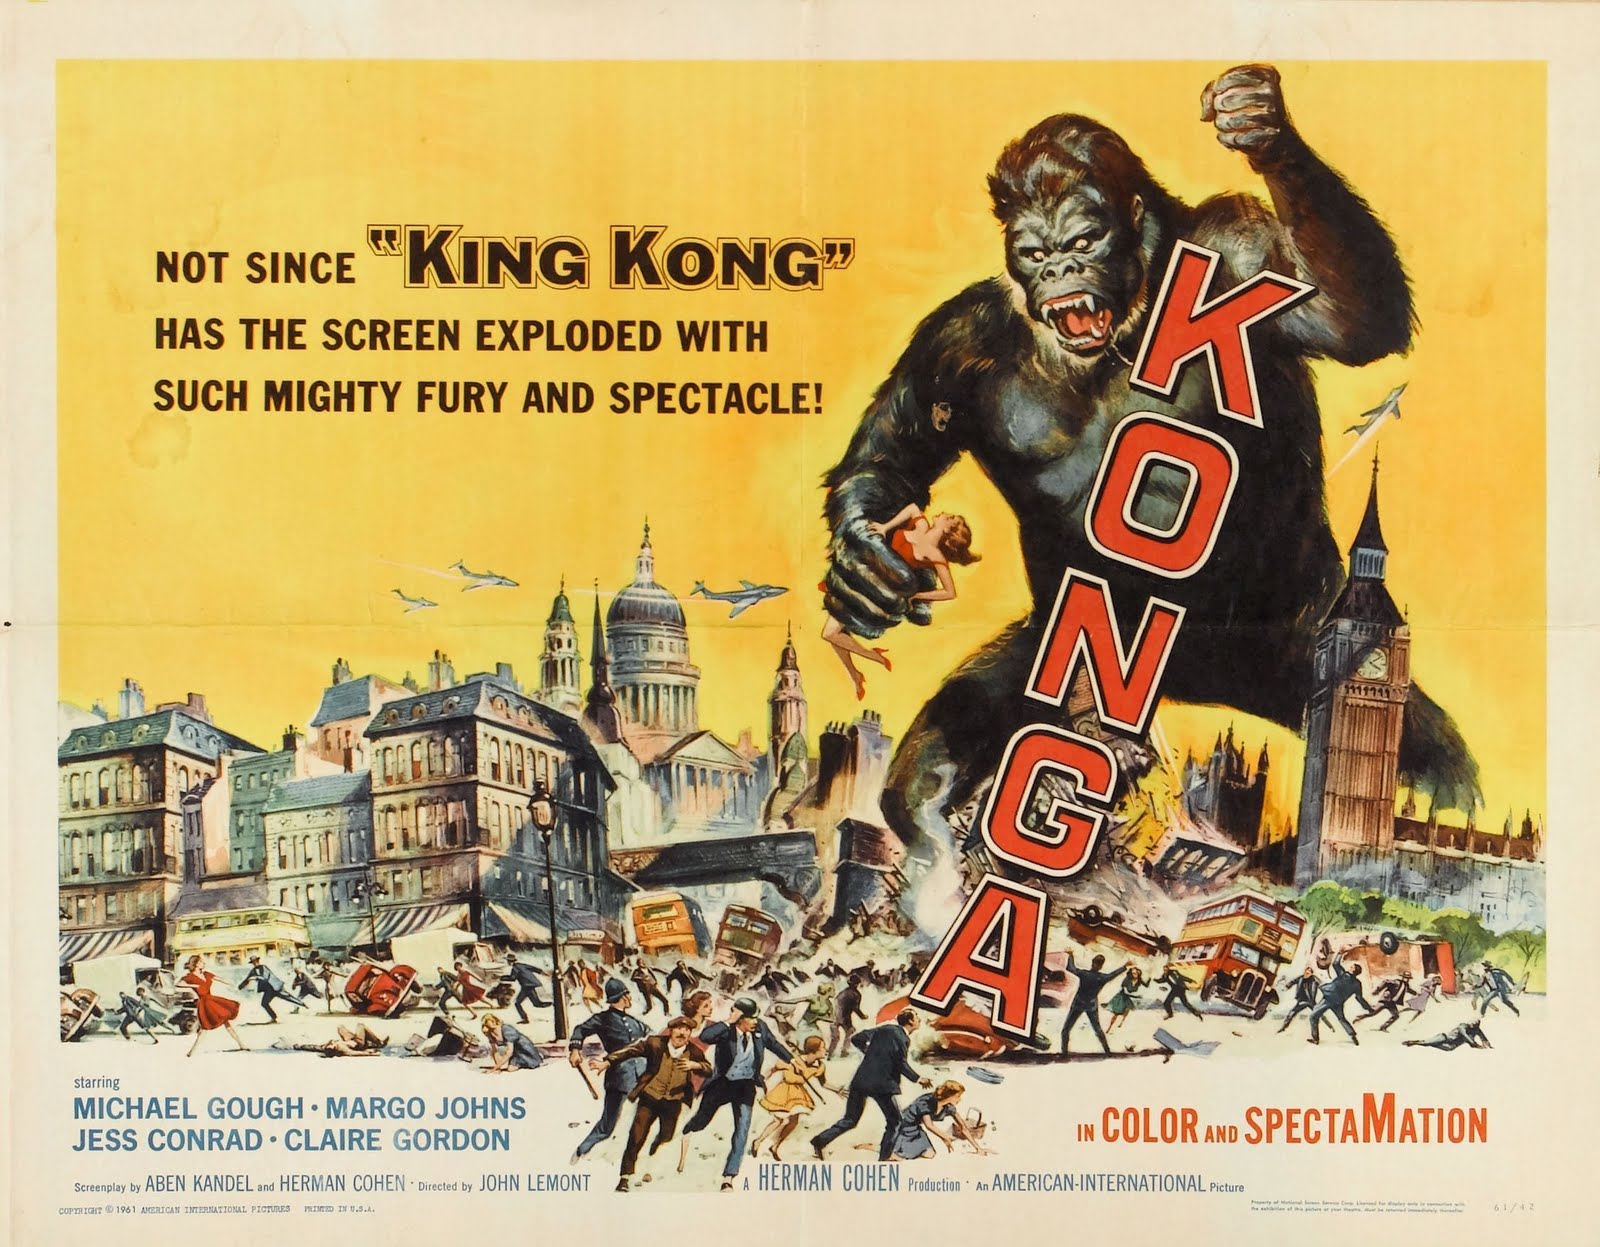 BLACK HOLE REVIEWS: KONGA (1961) - filming location found!